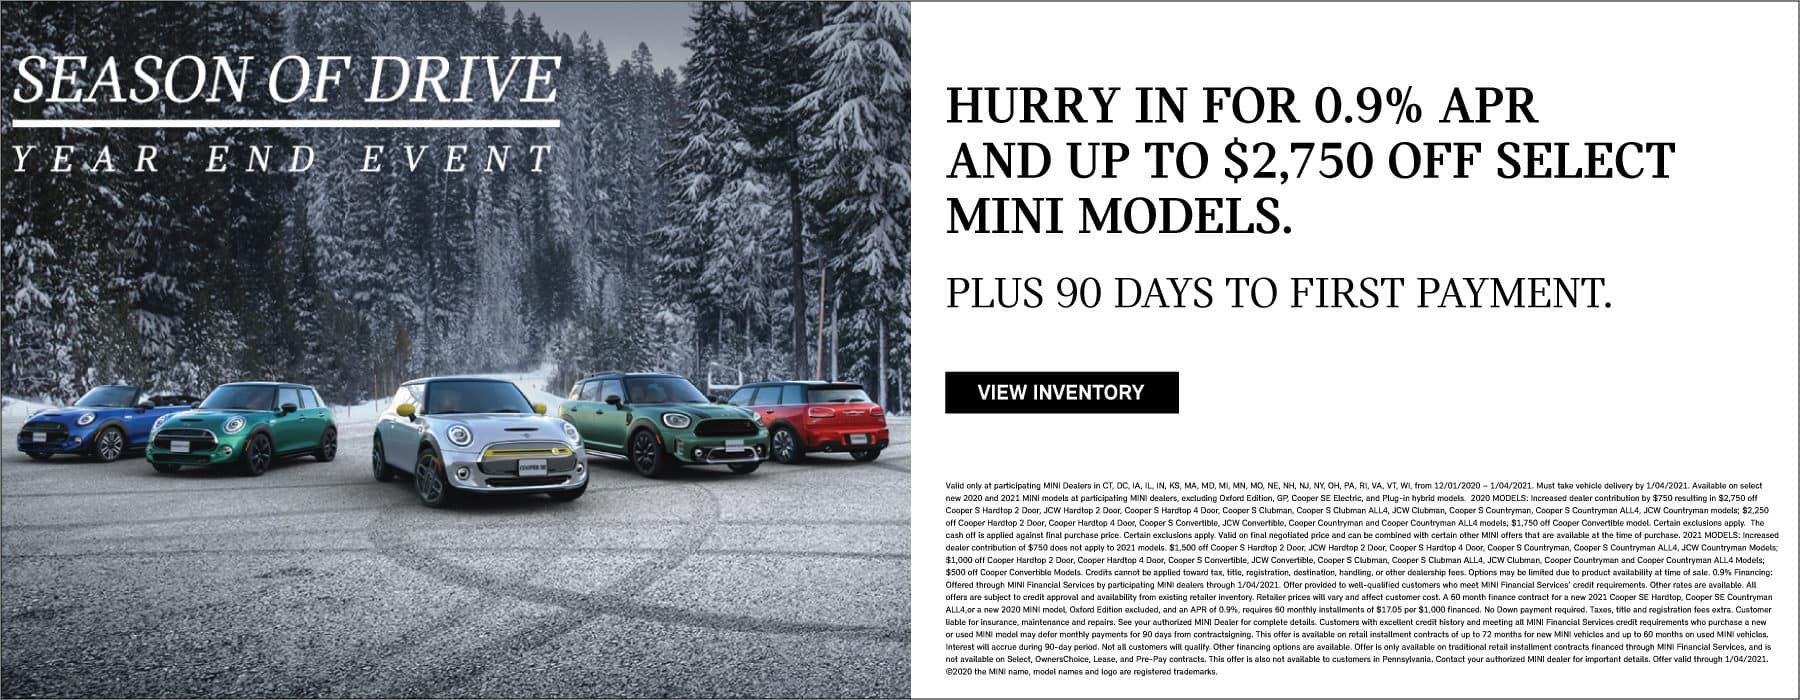 HURRY IN FOR 0.9% APR AND UP TO $2750 OFF SELECT MINI MODELS. Plus no payments for 90 days.